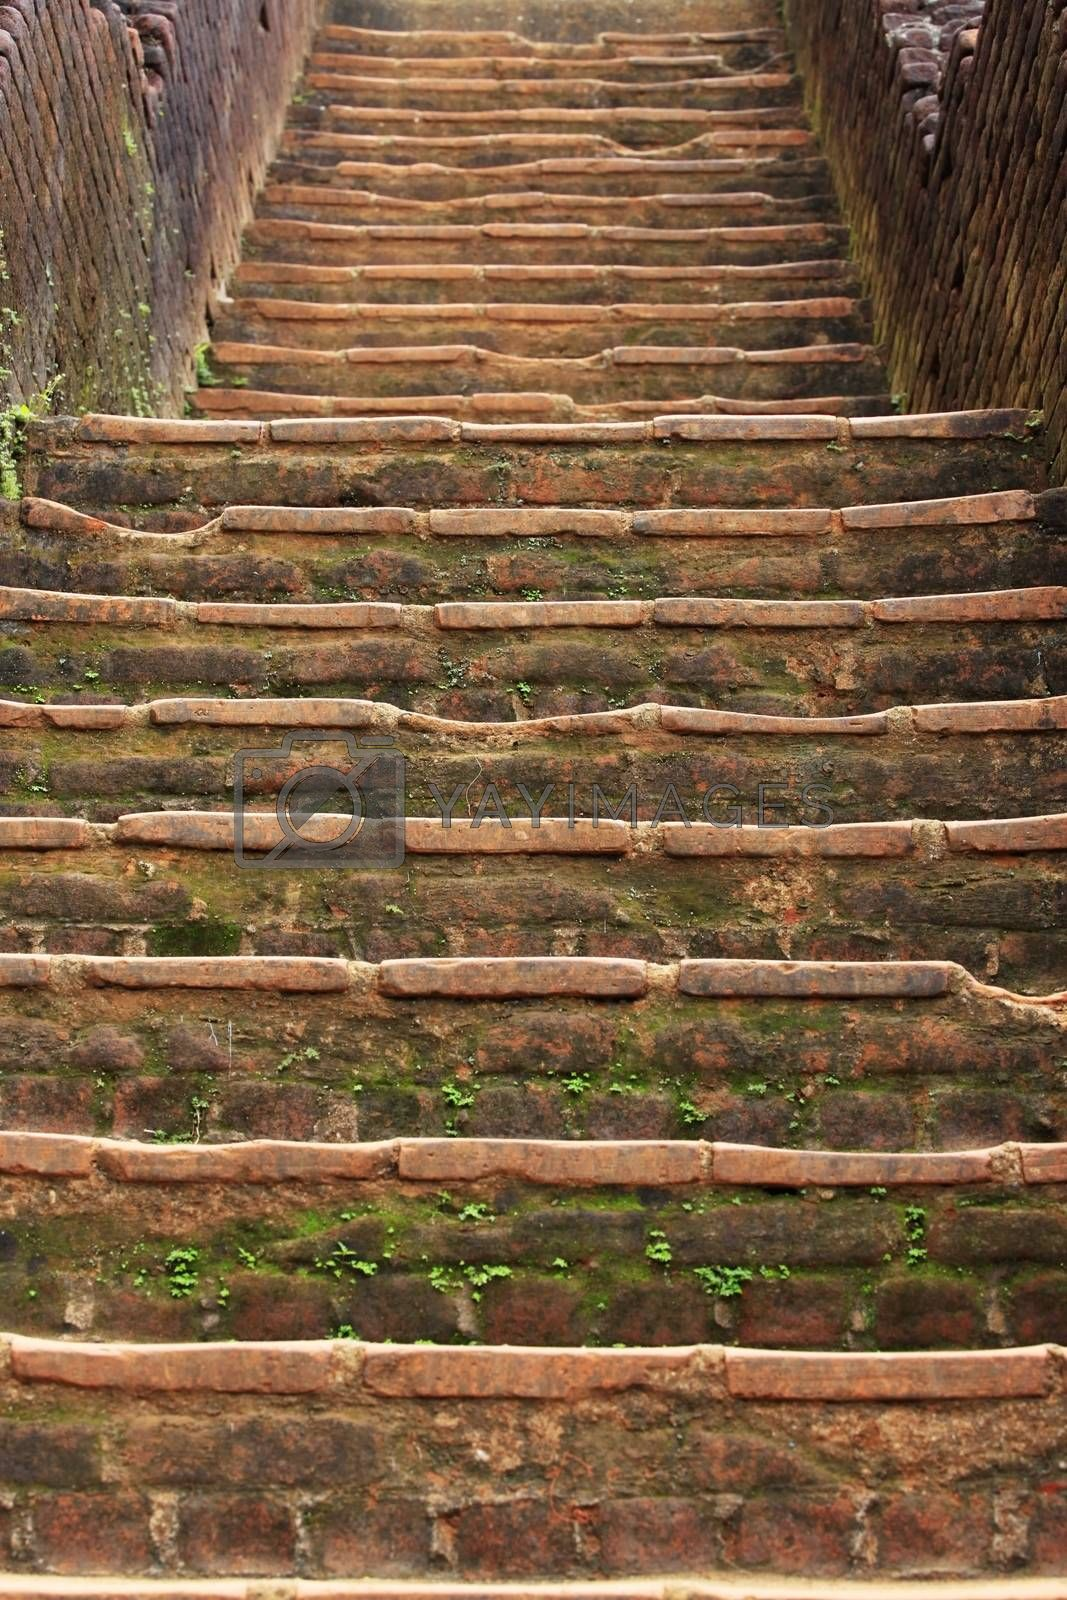 Sigiriya is an ancient palace located in the central Matale District near the town of Dambulla in the Central Province, Sri Lanka. The name refers to a site of historical and archaeological significance that is dominated by a massive column of rock nearly 200 meters (660 ft) high.